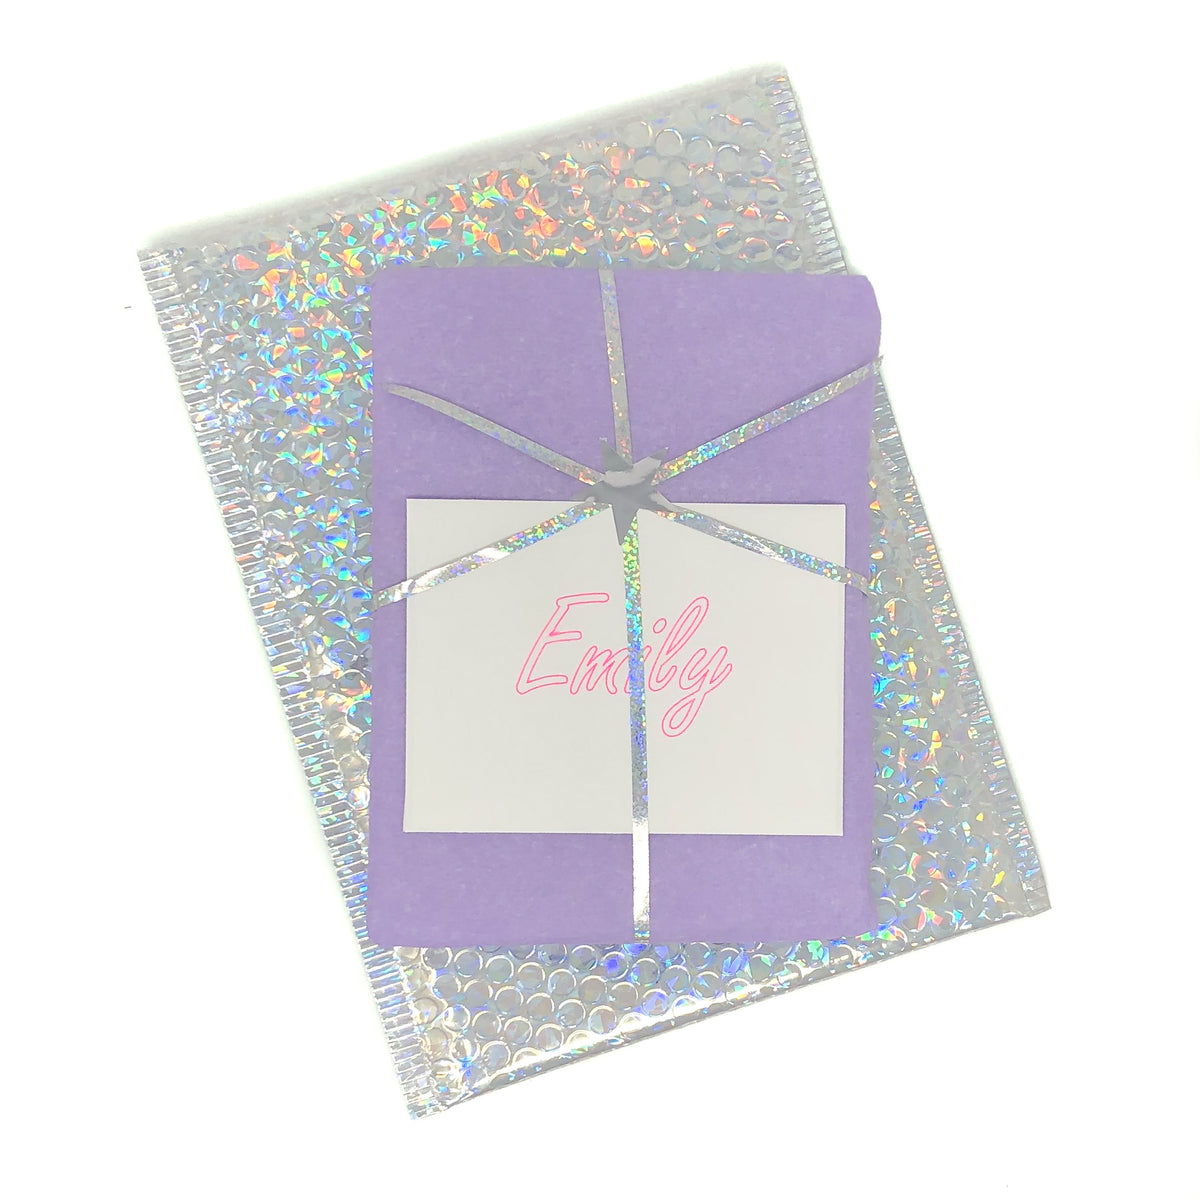 a632e061307 Each gift is hand wrapped and delivered in our sparkly envelopes with a  personalized card.